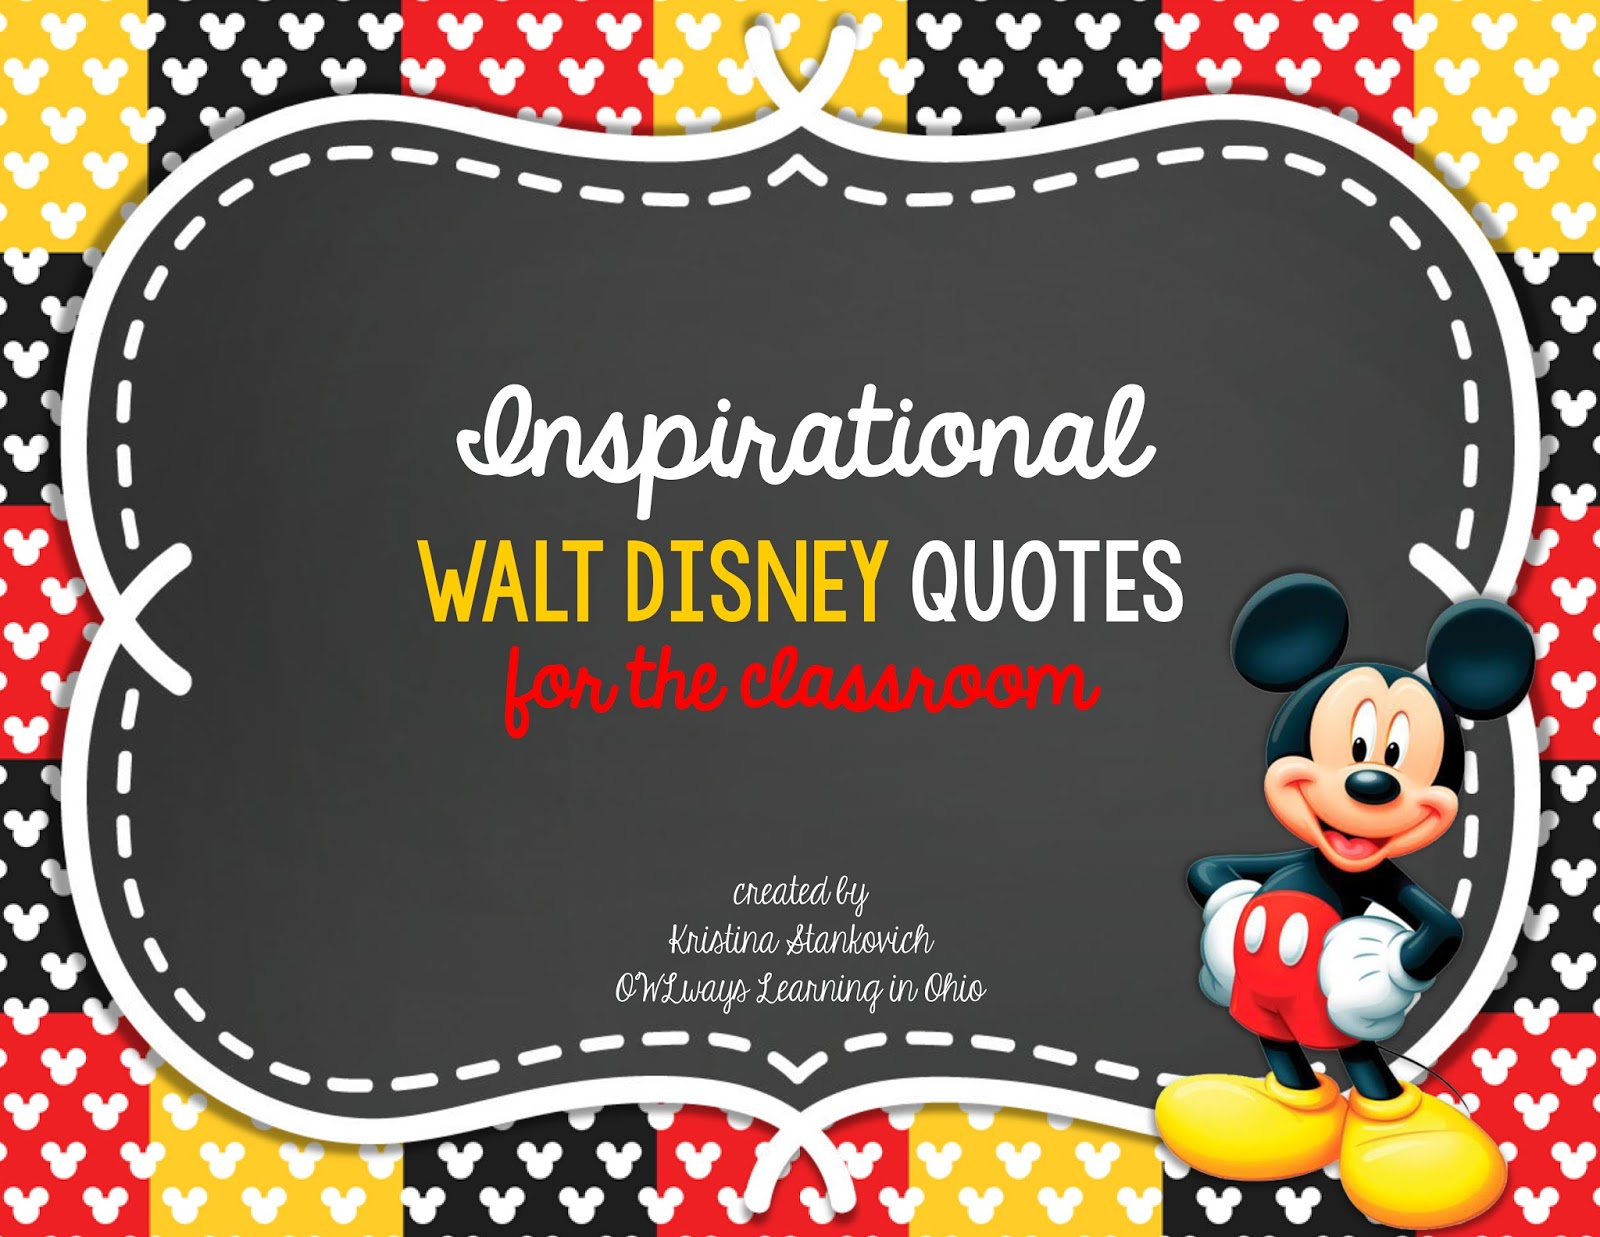 http://www.teacherspayteachers.com/Product/Inspirational-Walt-Disney-Quotes-for-the-classroom-1423096